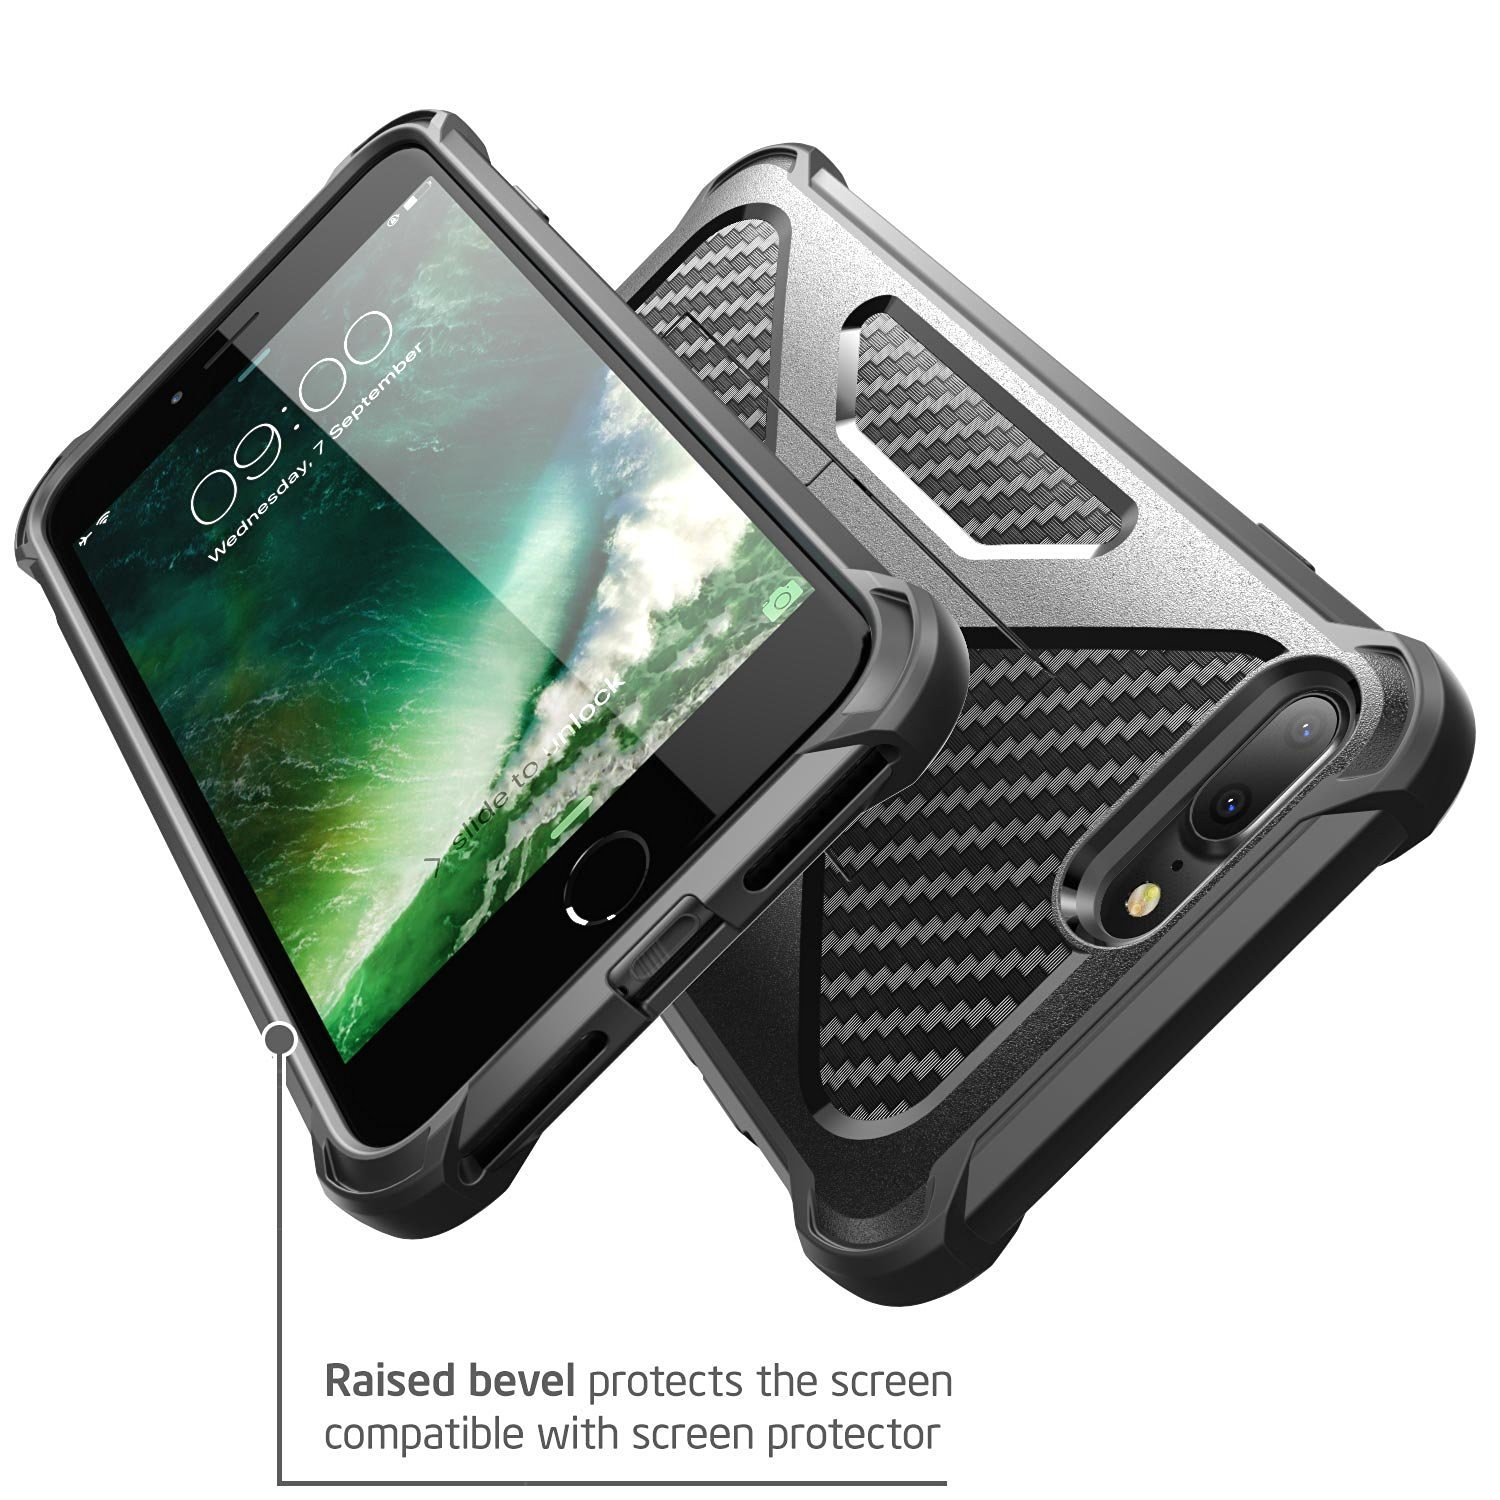 New Release iPhone 7 Transformer Kickstand Combo Case Bumper Cover